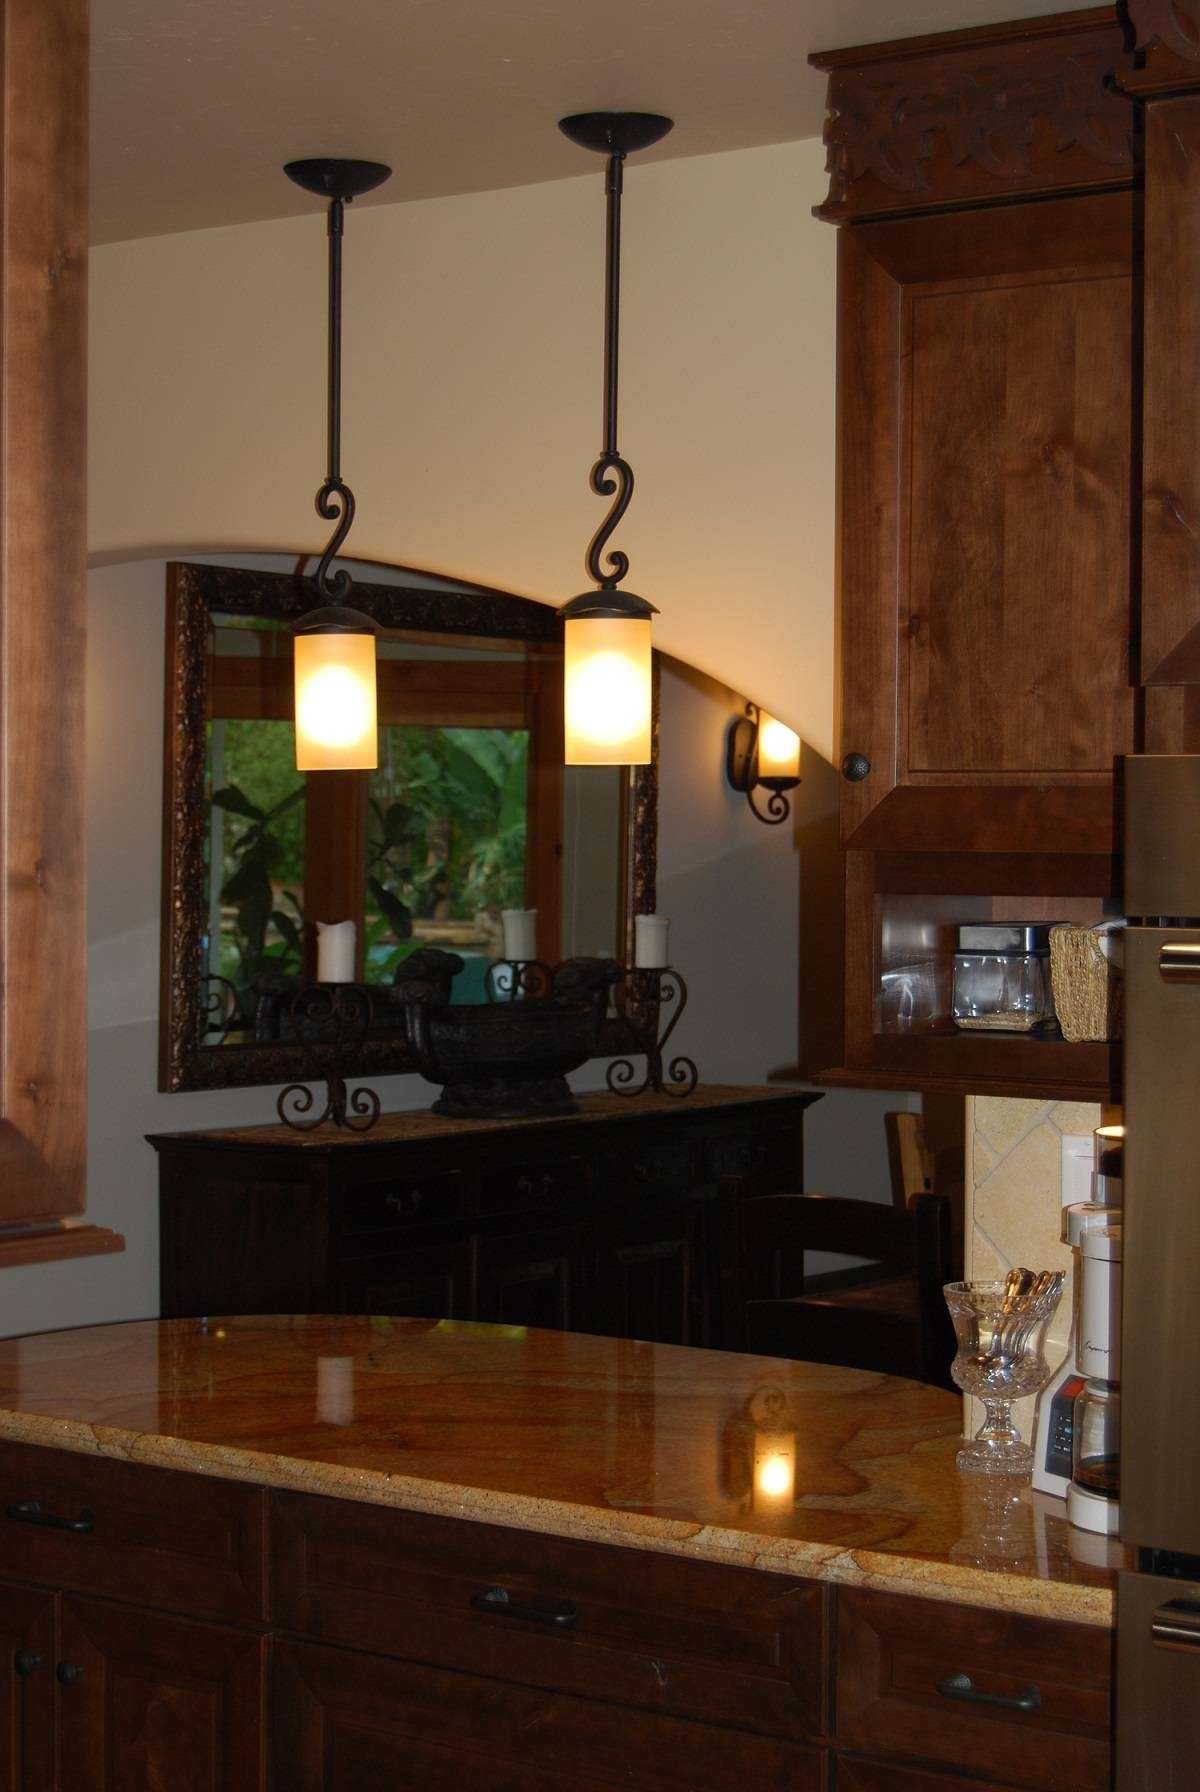 Wrought Iron Kitchen Lighting – Aneilve In Wrought Iron Kitchen Lights Fixtures (View 3 of 15)